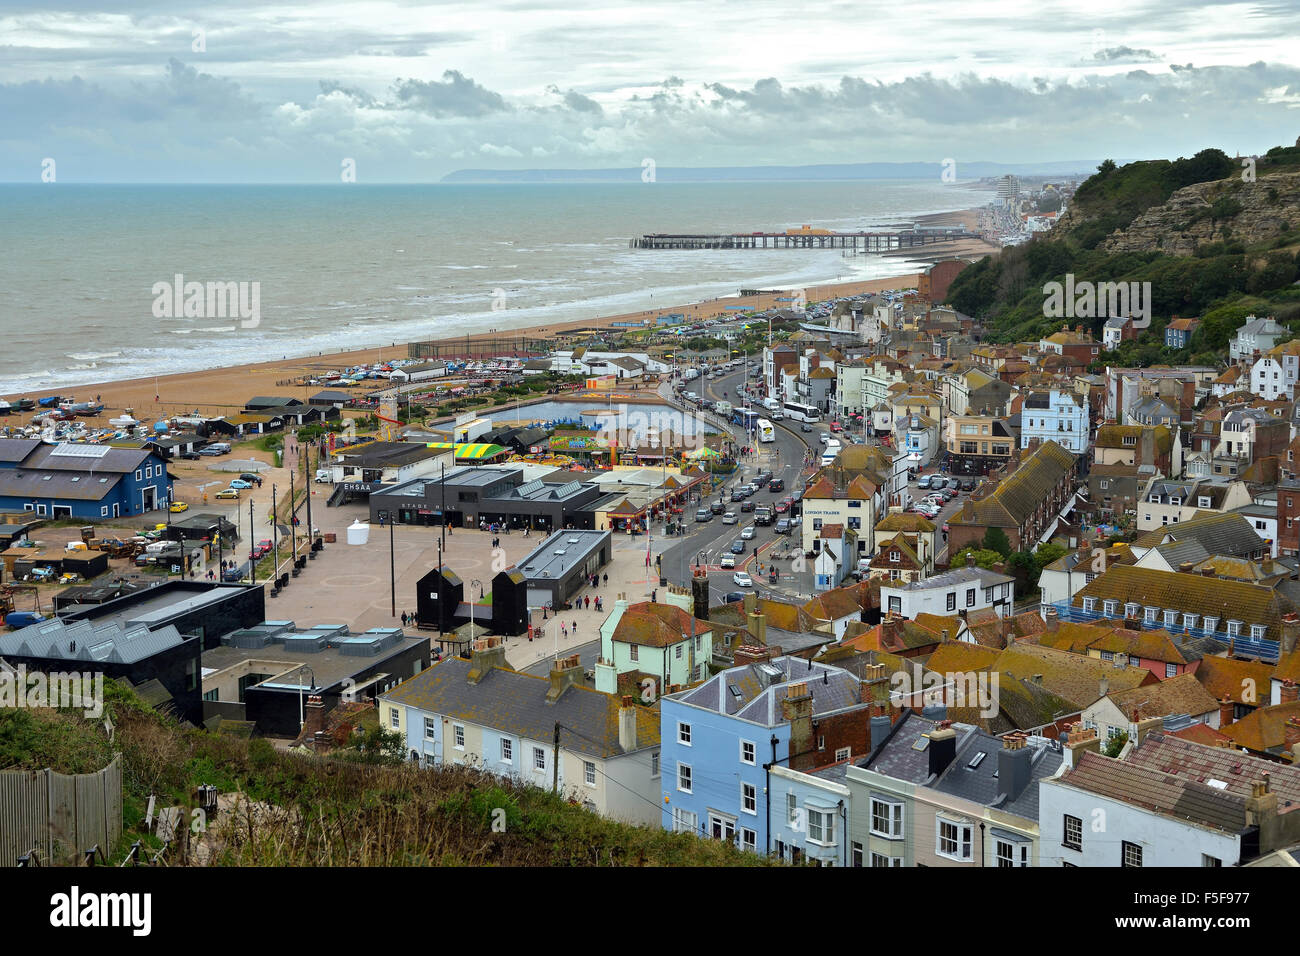 Hastings Old Town - Stock Image